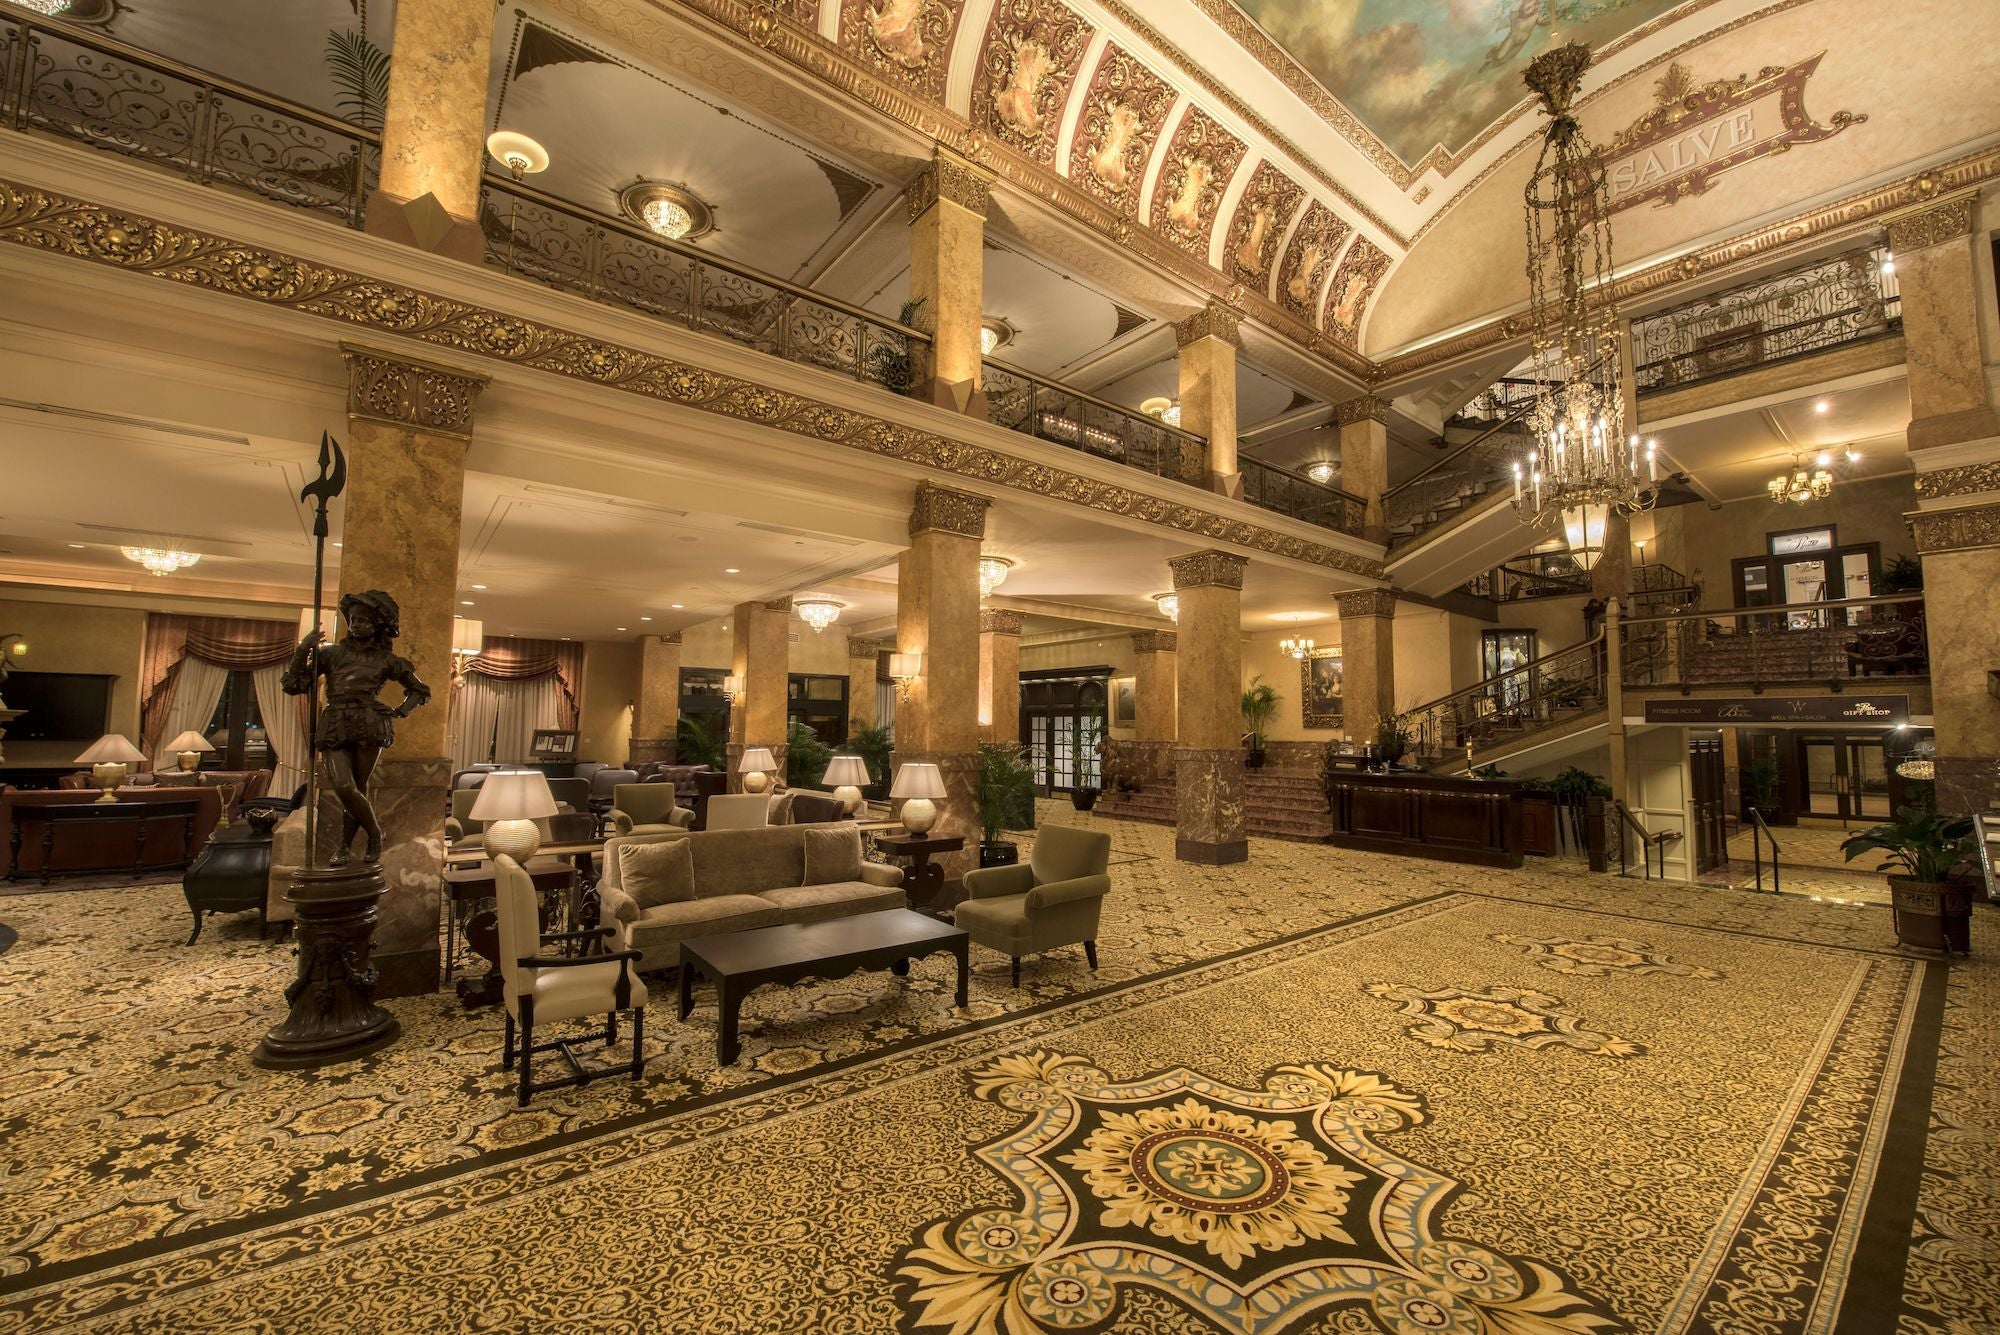 An ornately decorated lobby at the Pfister Hotel.